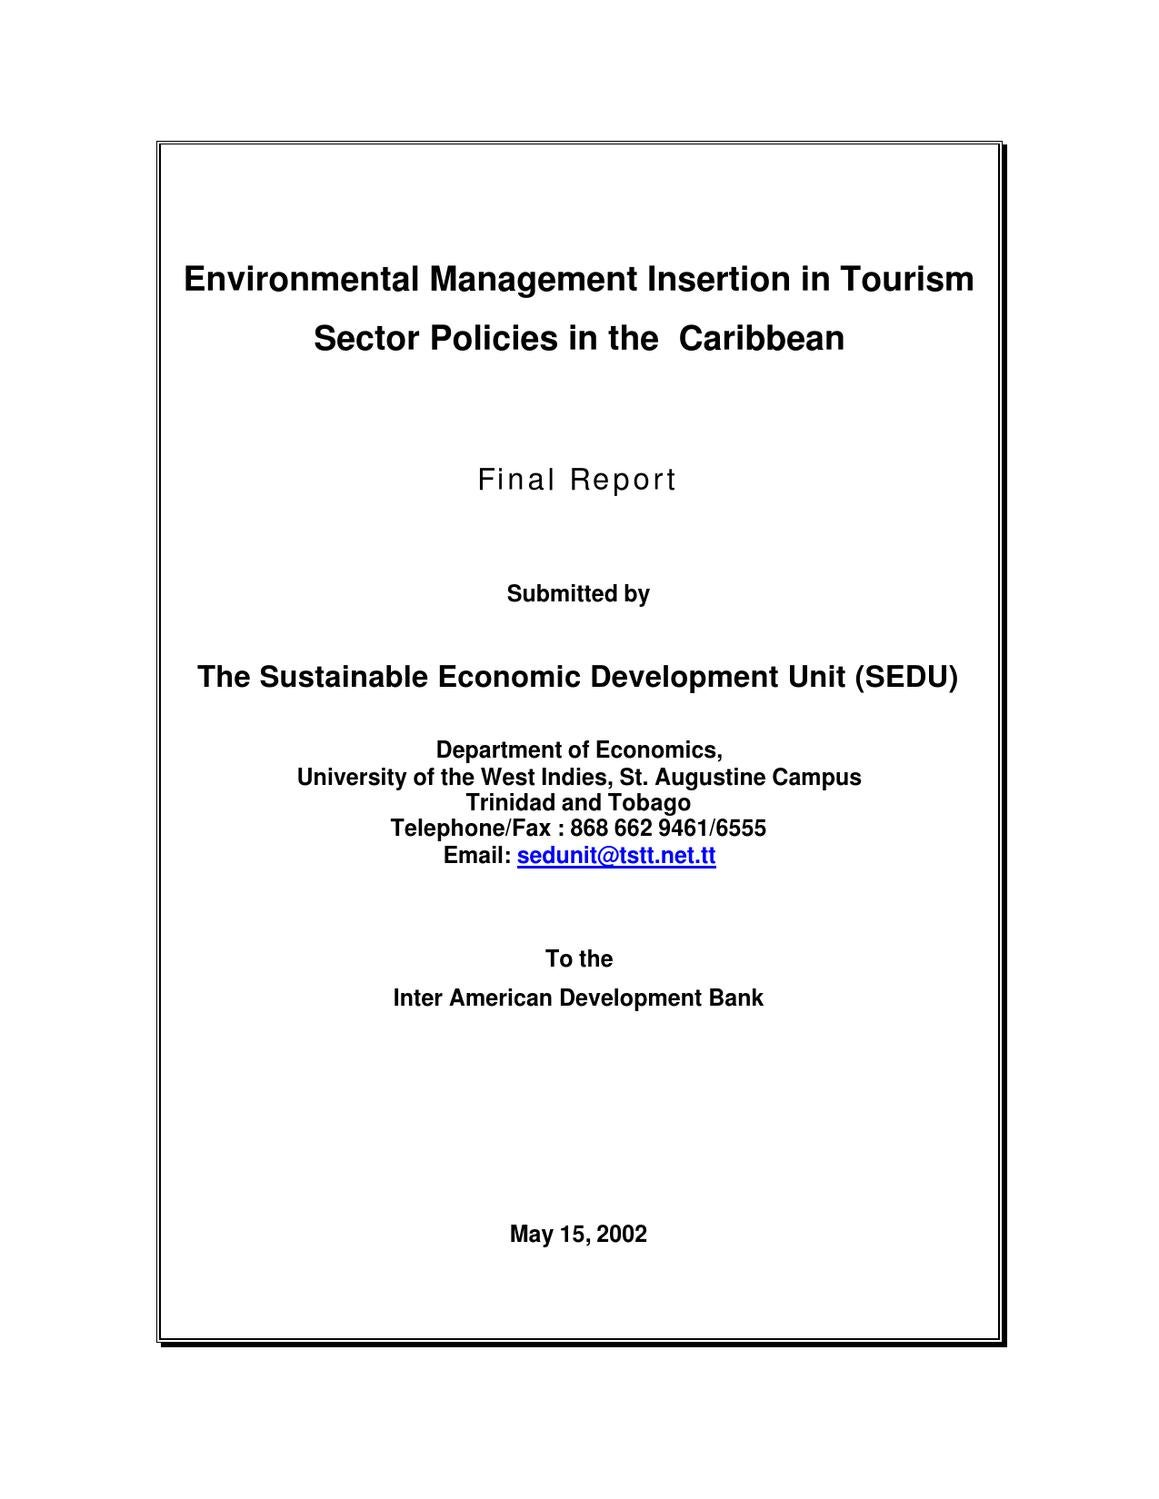 environmental management insertion in tourism: sector policies in